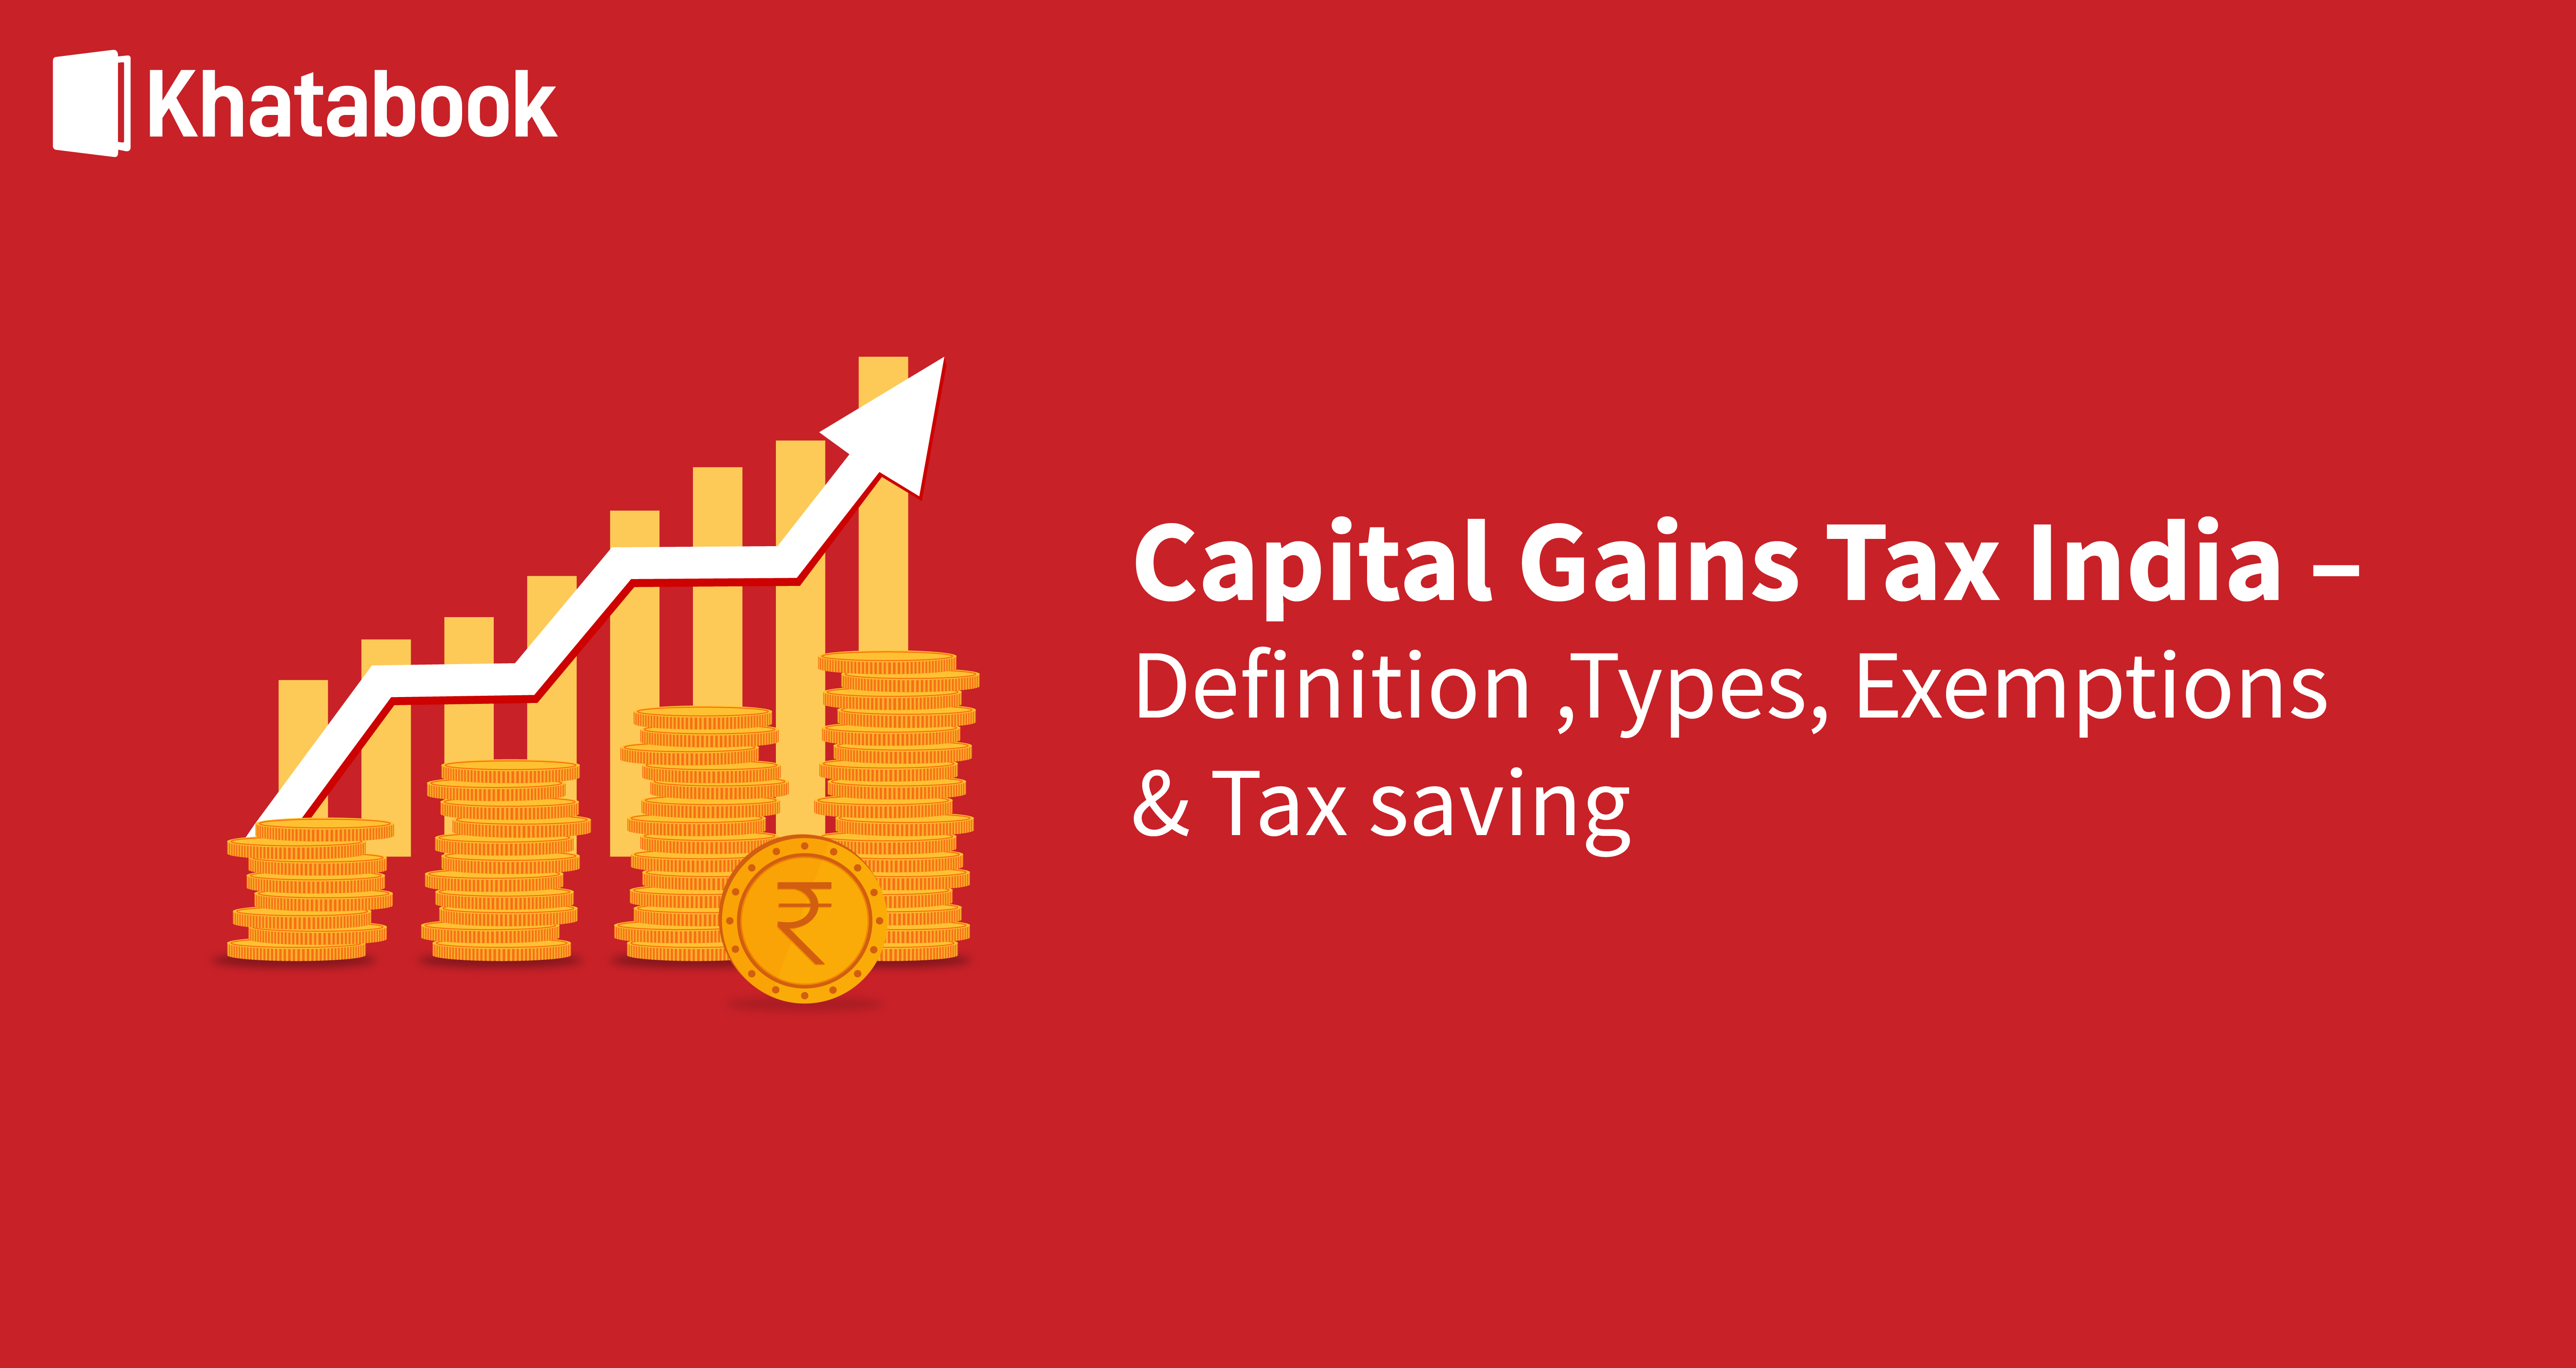 Capital Gains Tax India Definition, Types, Exemptions & Tax Saving